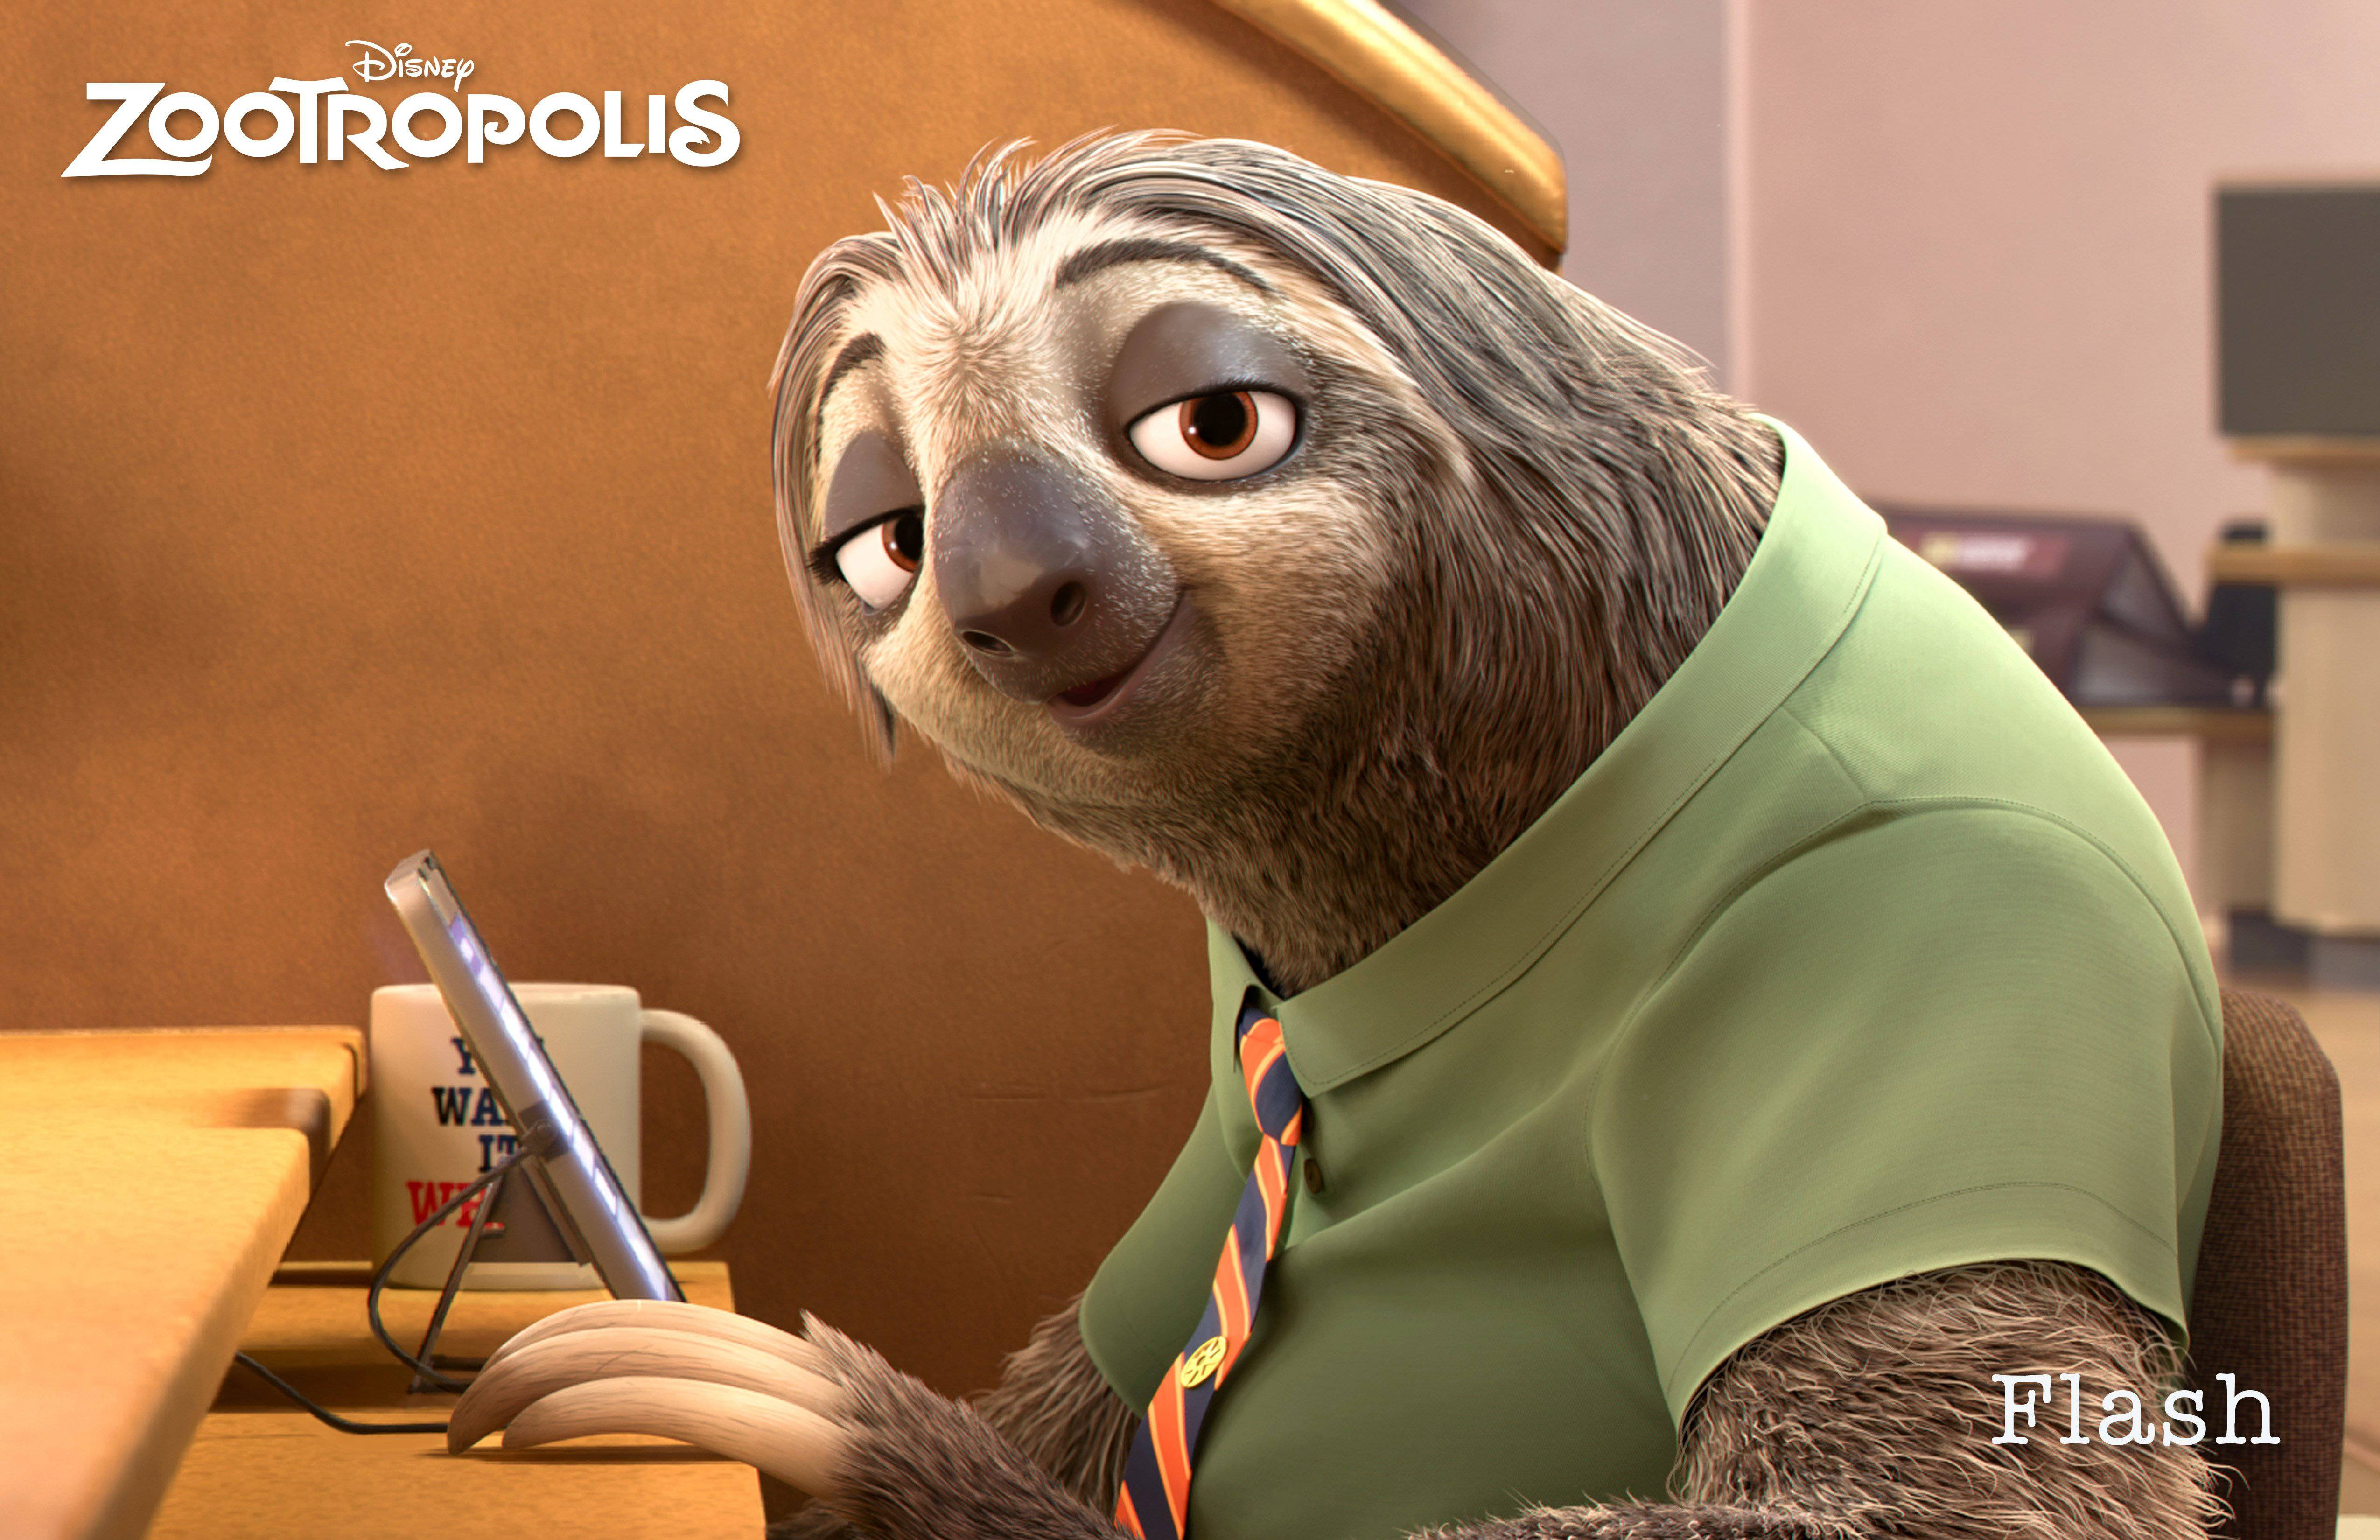 http://www.chedonna.it/wp-content/uploads/2015/12/Zootropolis-8.jpg